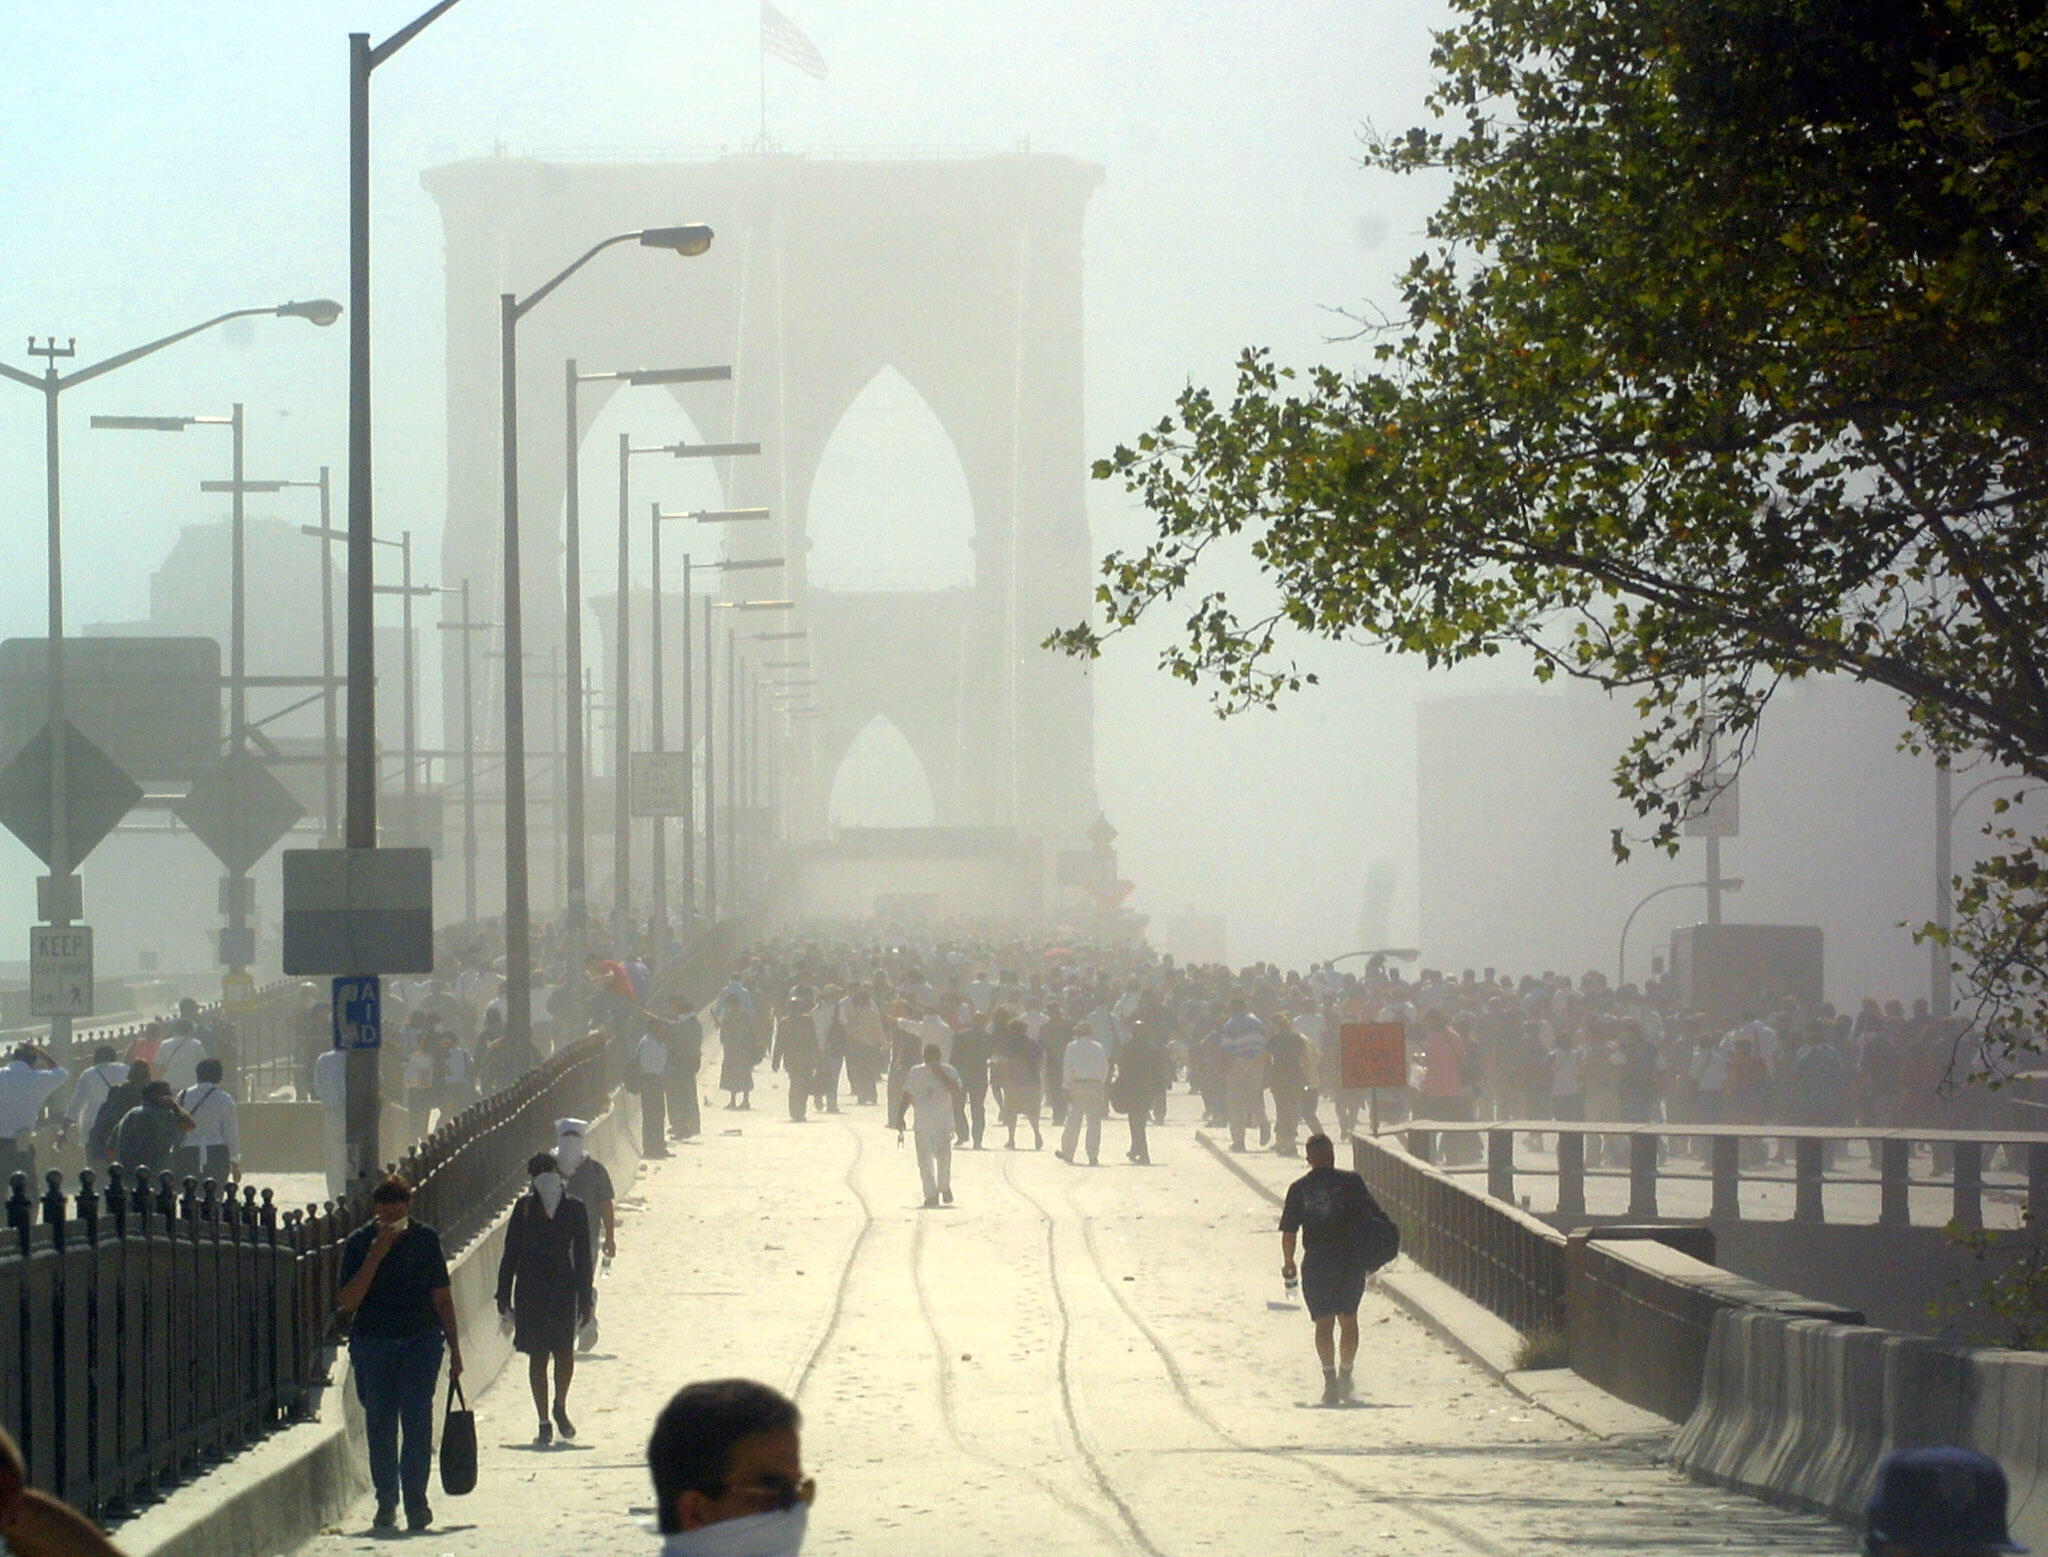 Some 500,000 people fled Manhattan over the Brooklyn Bridge in a matter of just hours, even as the area was blanketed in dust and debris.